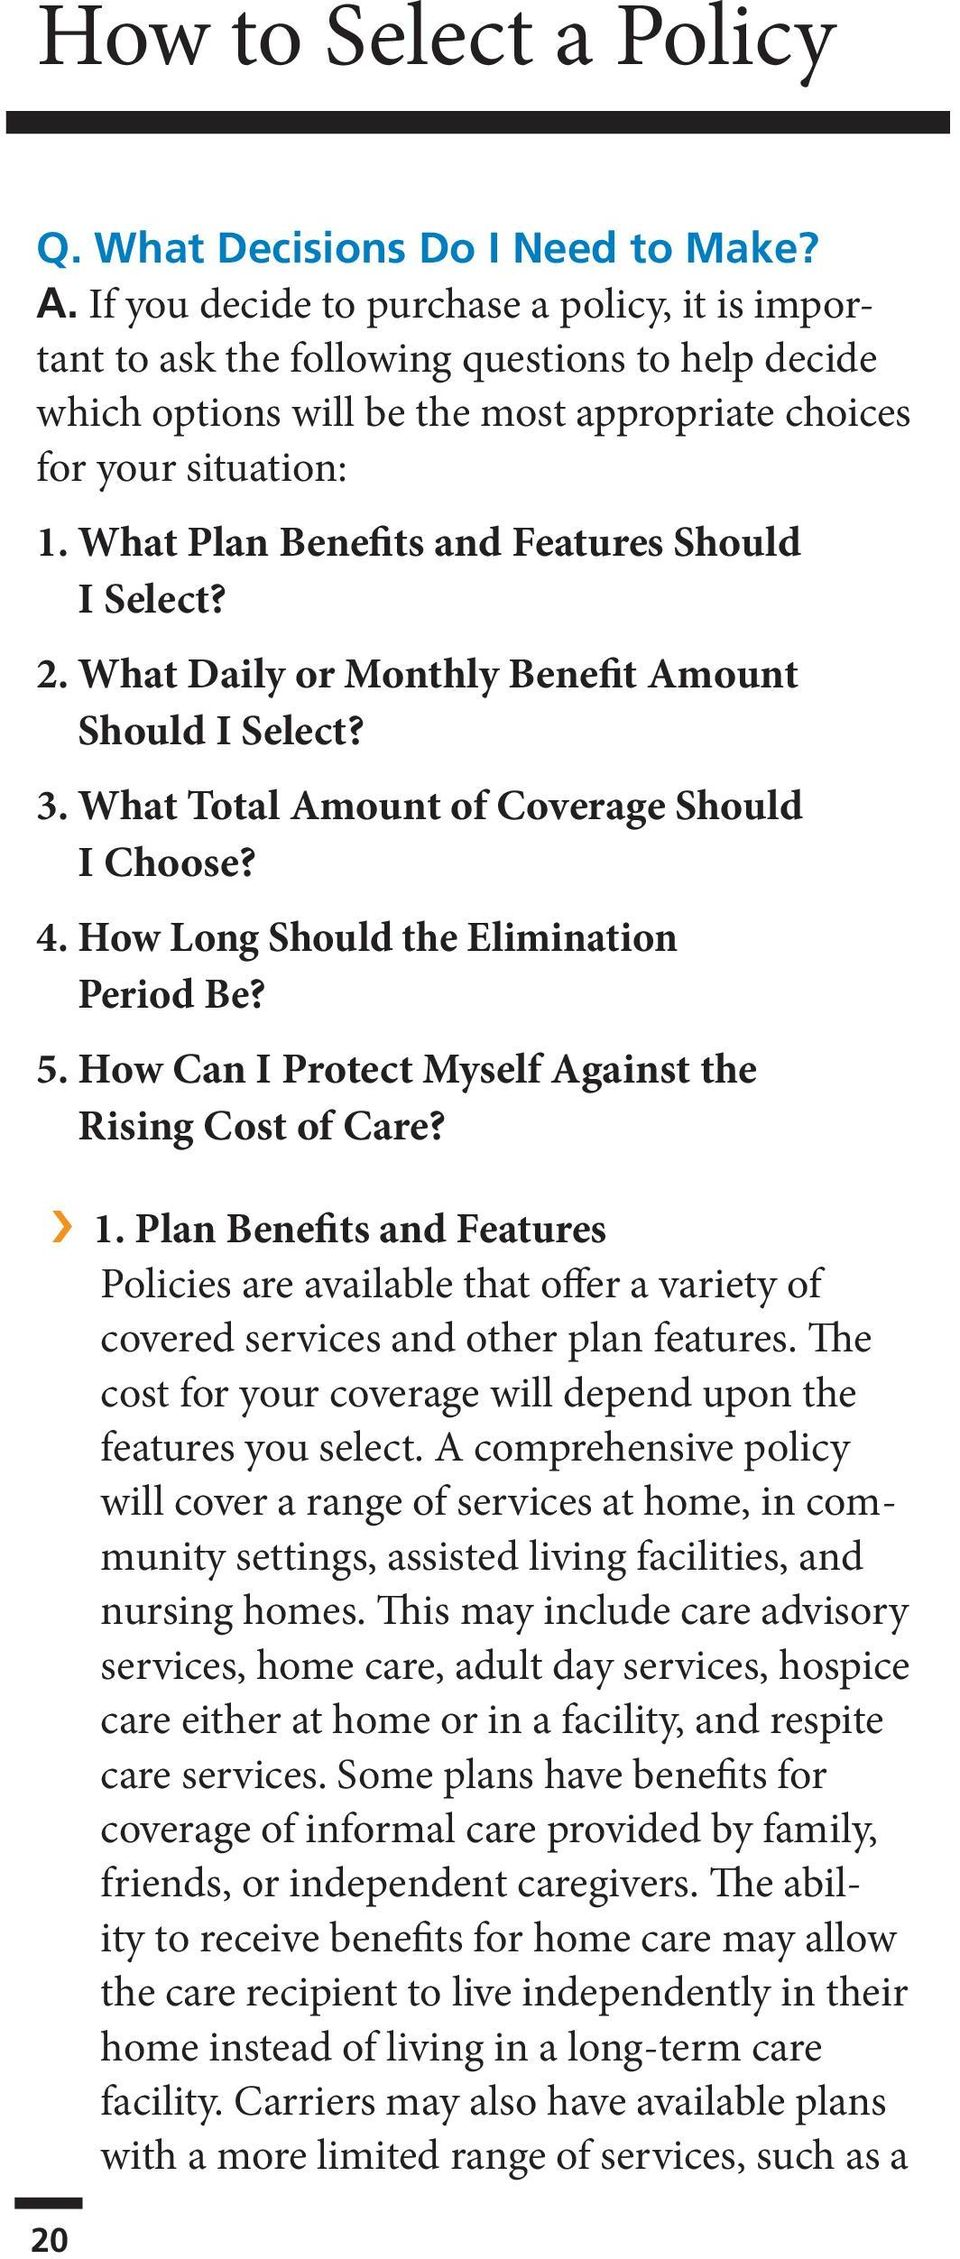 What Plan Benefits and Features Should I Select? 2. What Daily or Monthly Benefit Amount Should I Select? 3. What Total Amount of Coverage Should I Choose? 4.